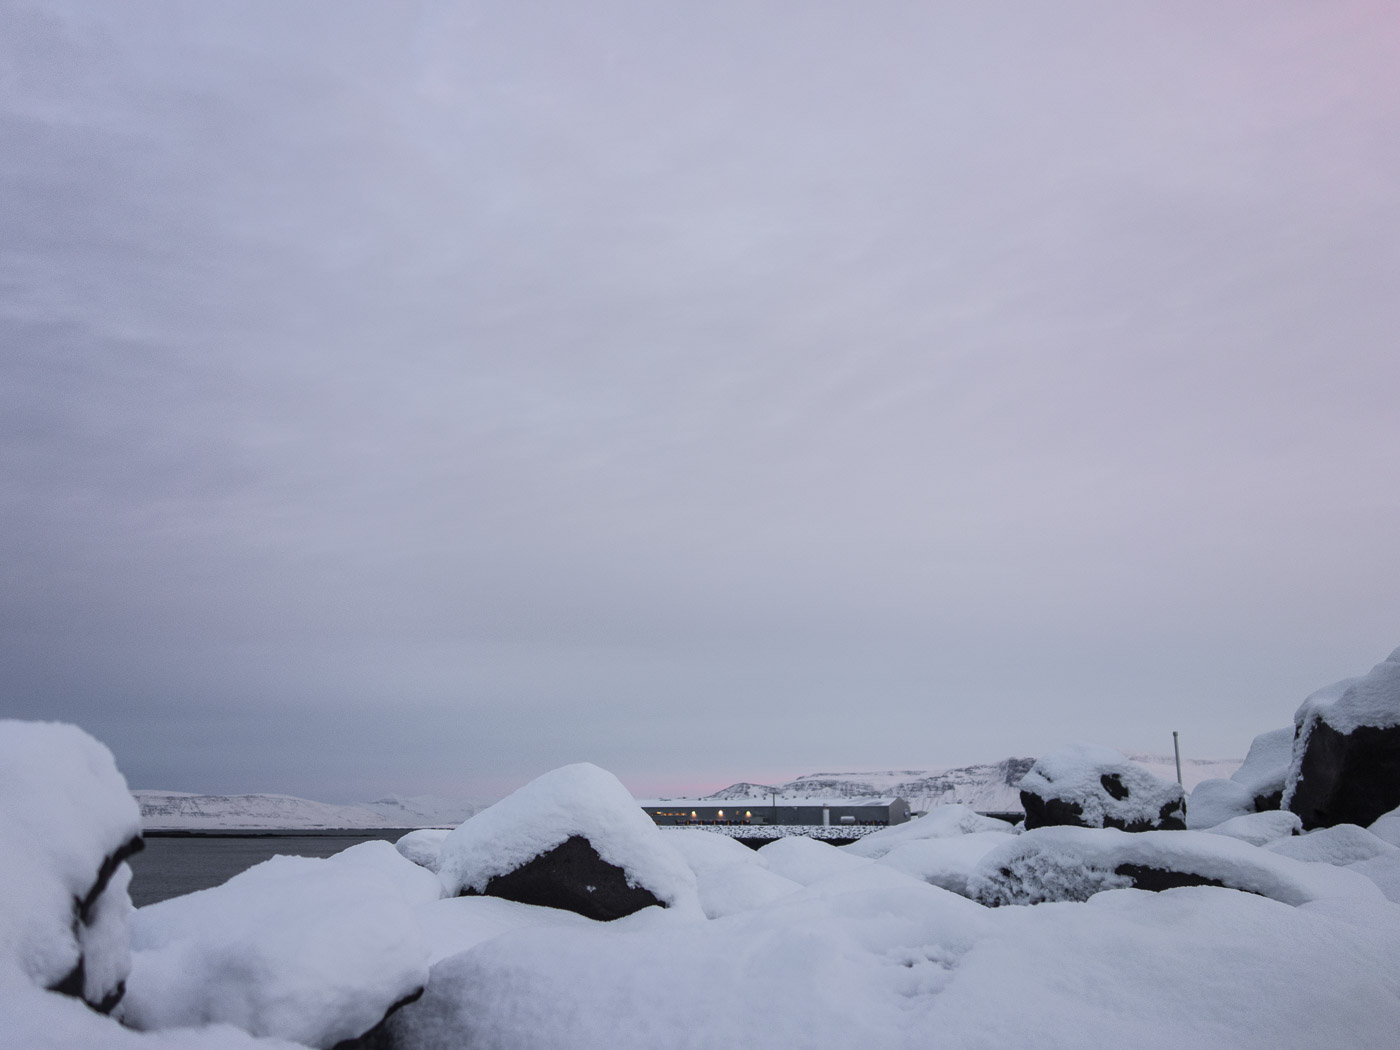 Reykjavík. A month in snow and ice. - I. (3 till 30 December 2014)